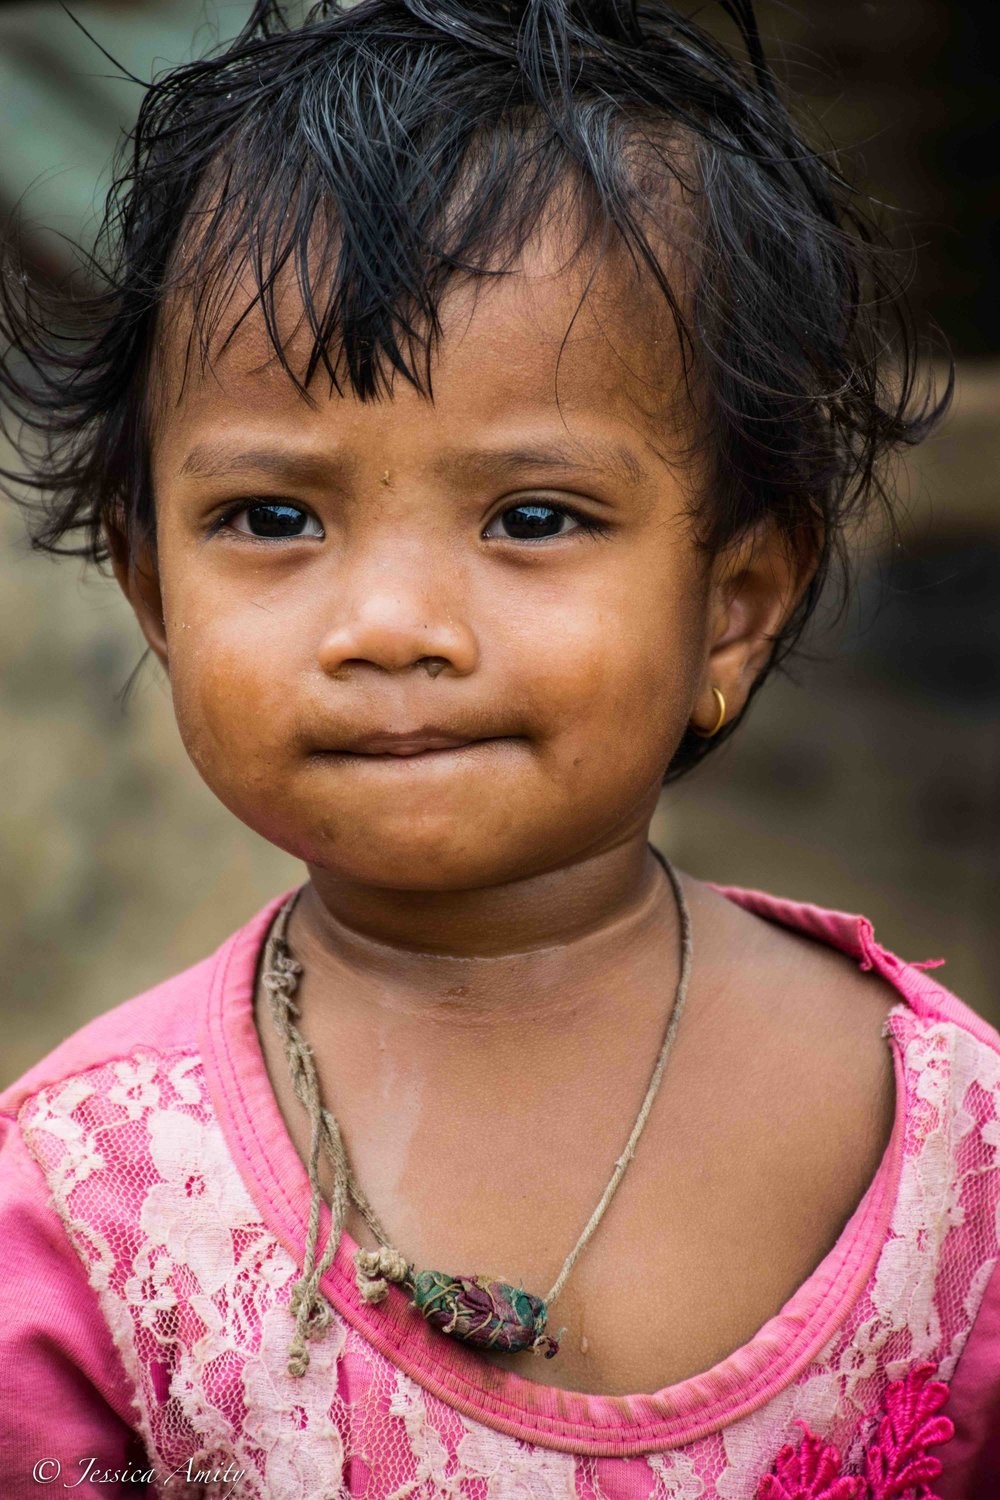 A little girl (age 2). In traditional Nepalese culture, piercings (the nose actually holds more significance), are usually done before a girl turns 5 and carries different meanings among different castes. For example, Brahmins and Chhetris believe wearing such ornaments portray a woman's purity and are believed to protect a woman and her family from evil spirits.